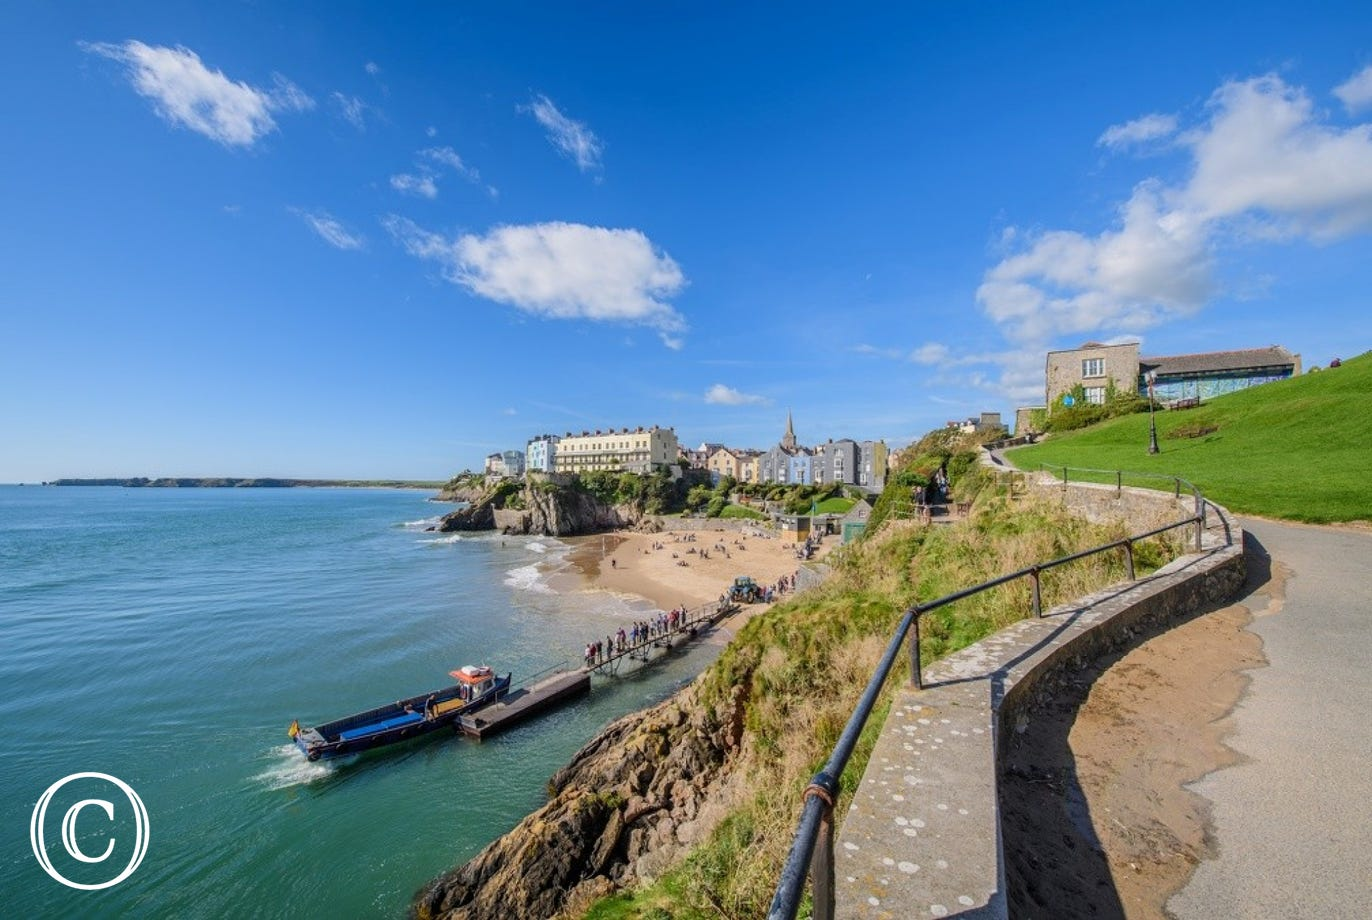 Tenby is an idyllic coastal town